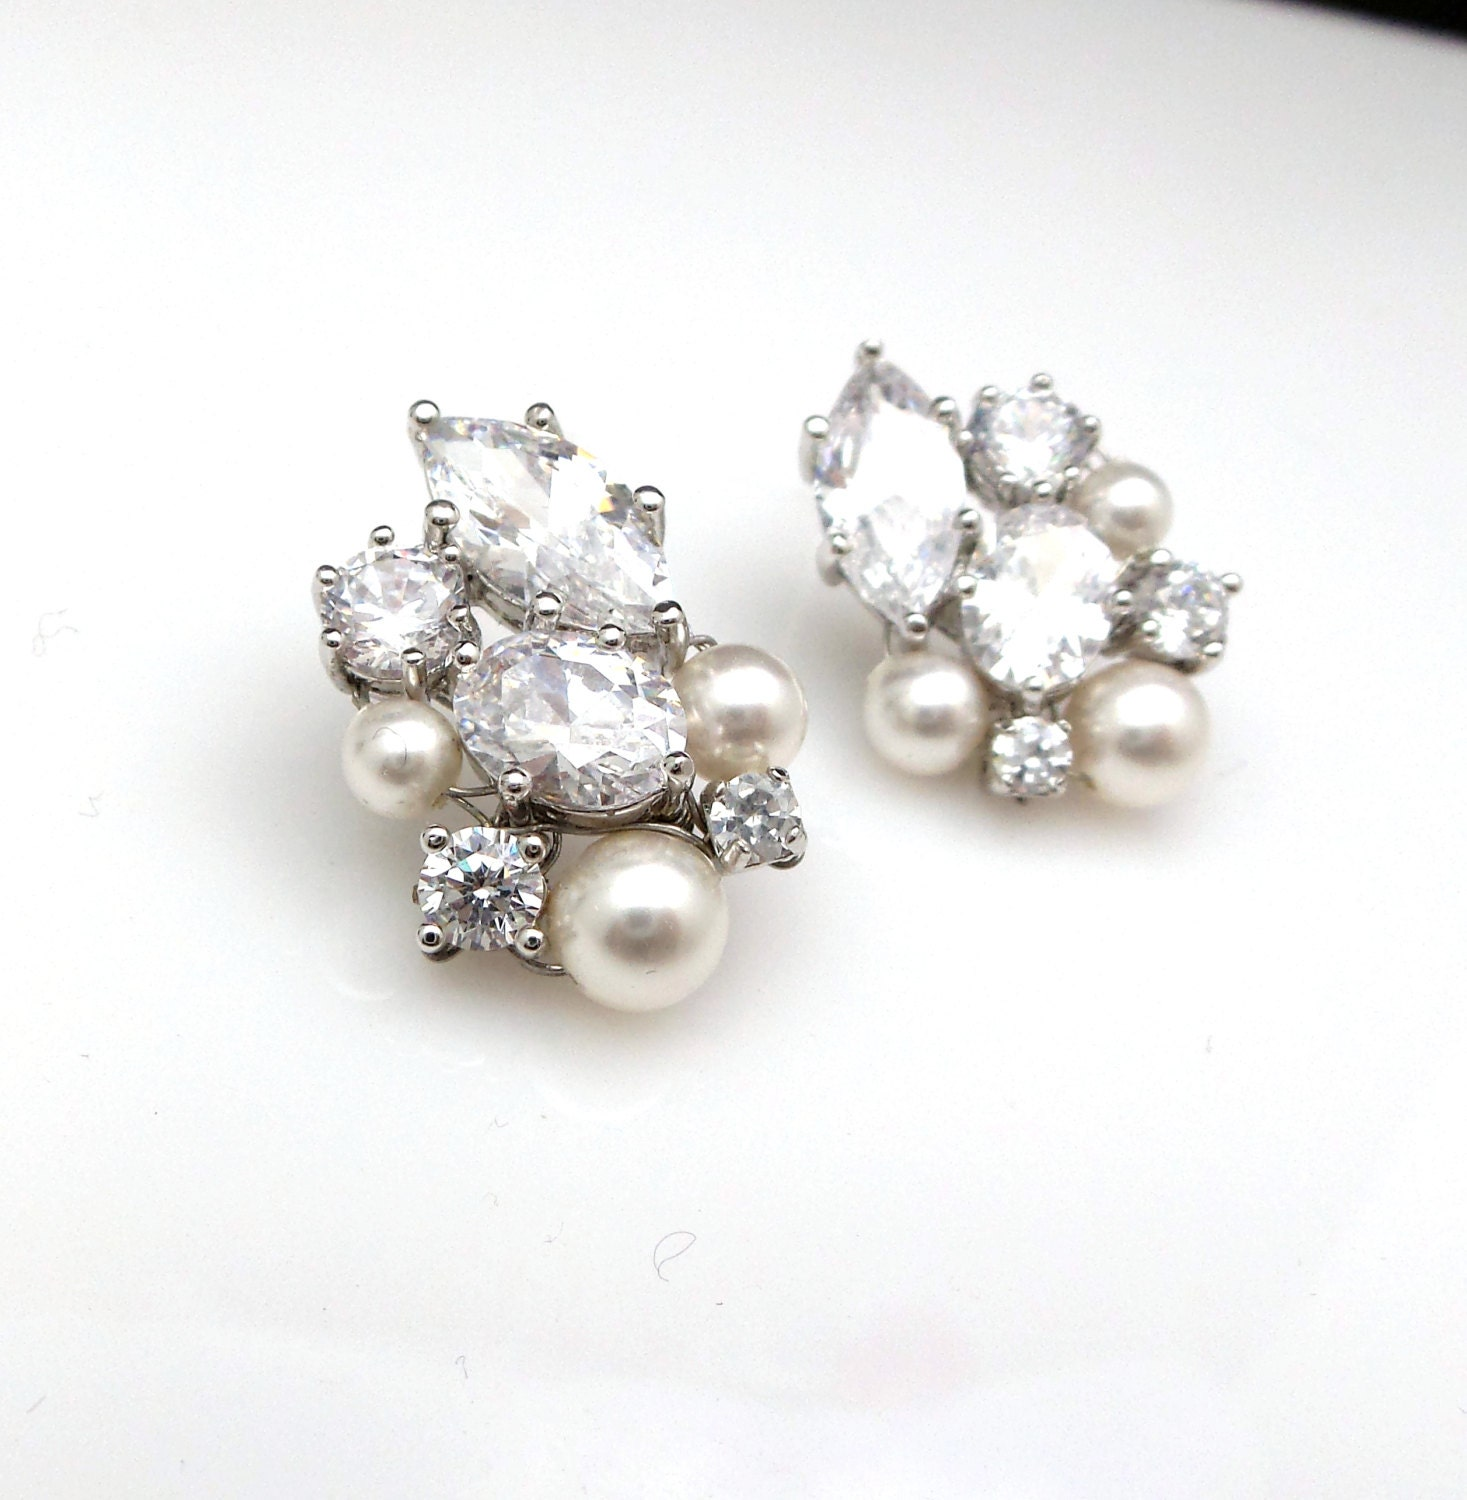 Wedding Gift Jewelry : wedding bridal earrings jewelry gift prom party christmas